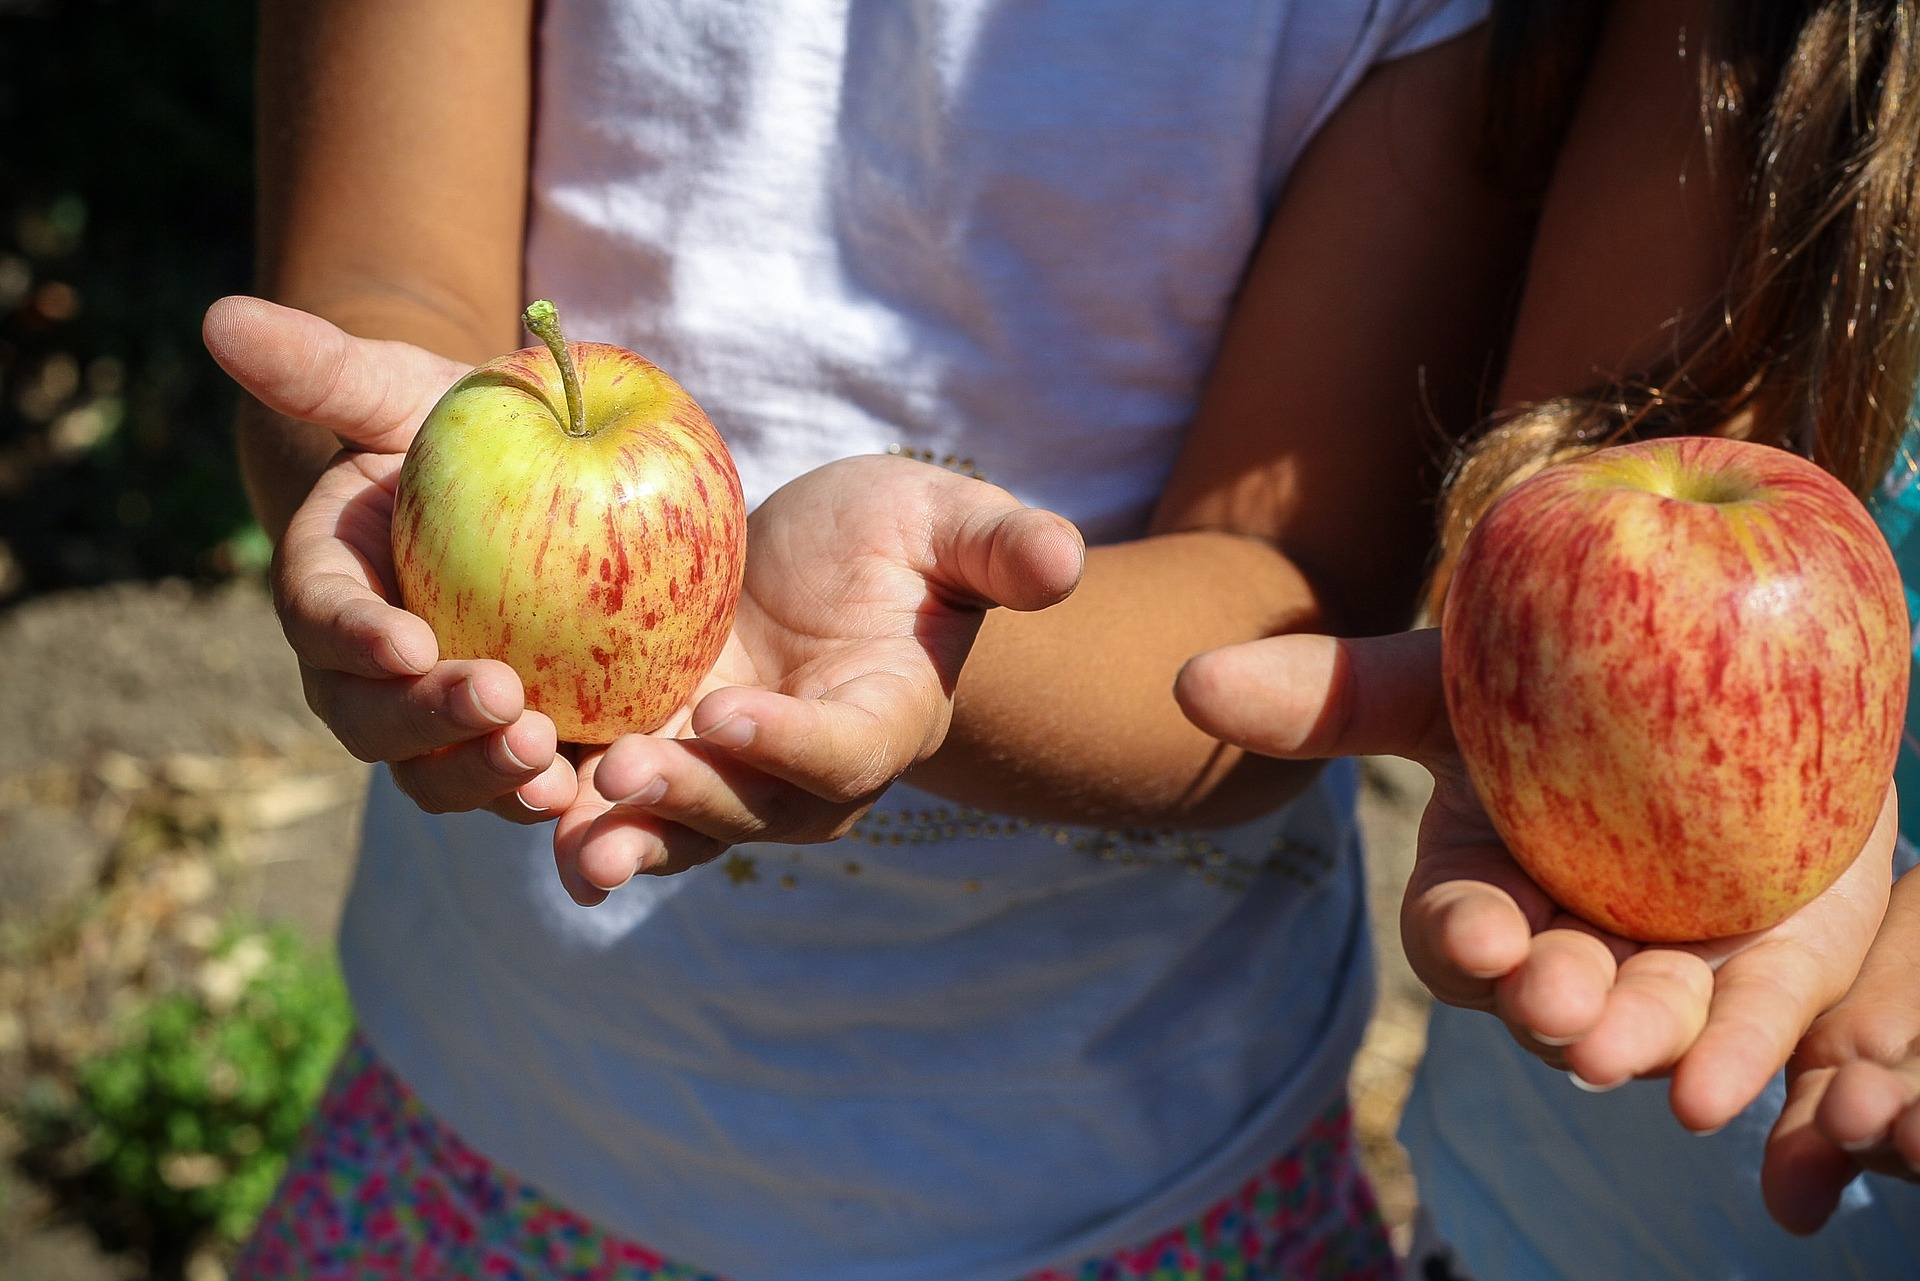 Maryland Receives Two Farm to School Grants from the USDA